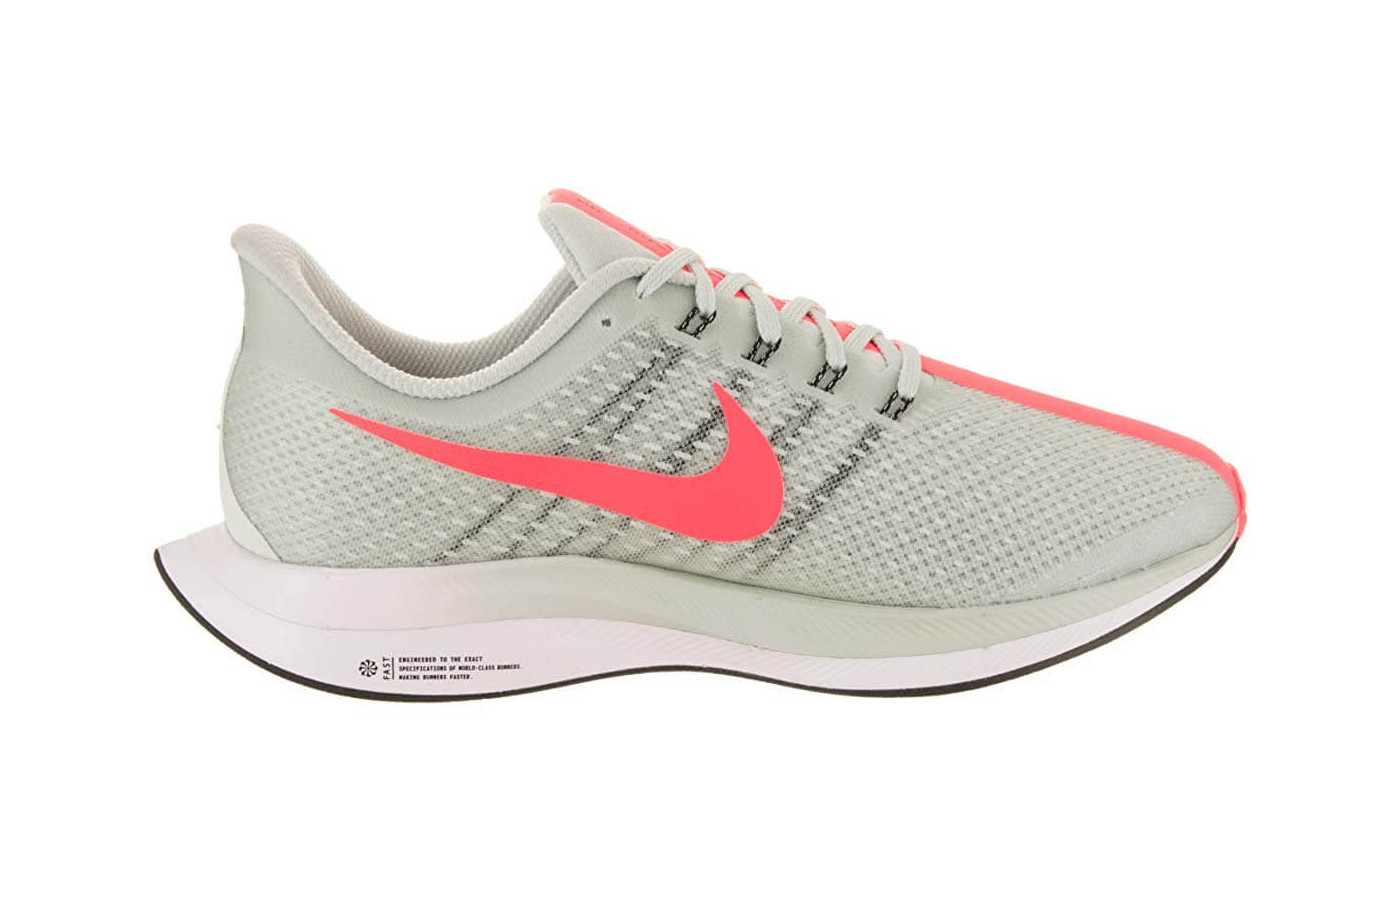 1ae6e3a3e3d Its translucent mesh upper gives the Zoom Pegasus Turbo increased  breathability.